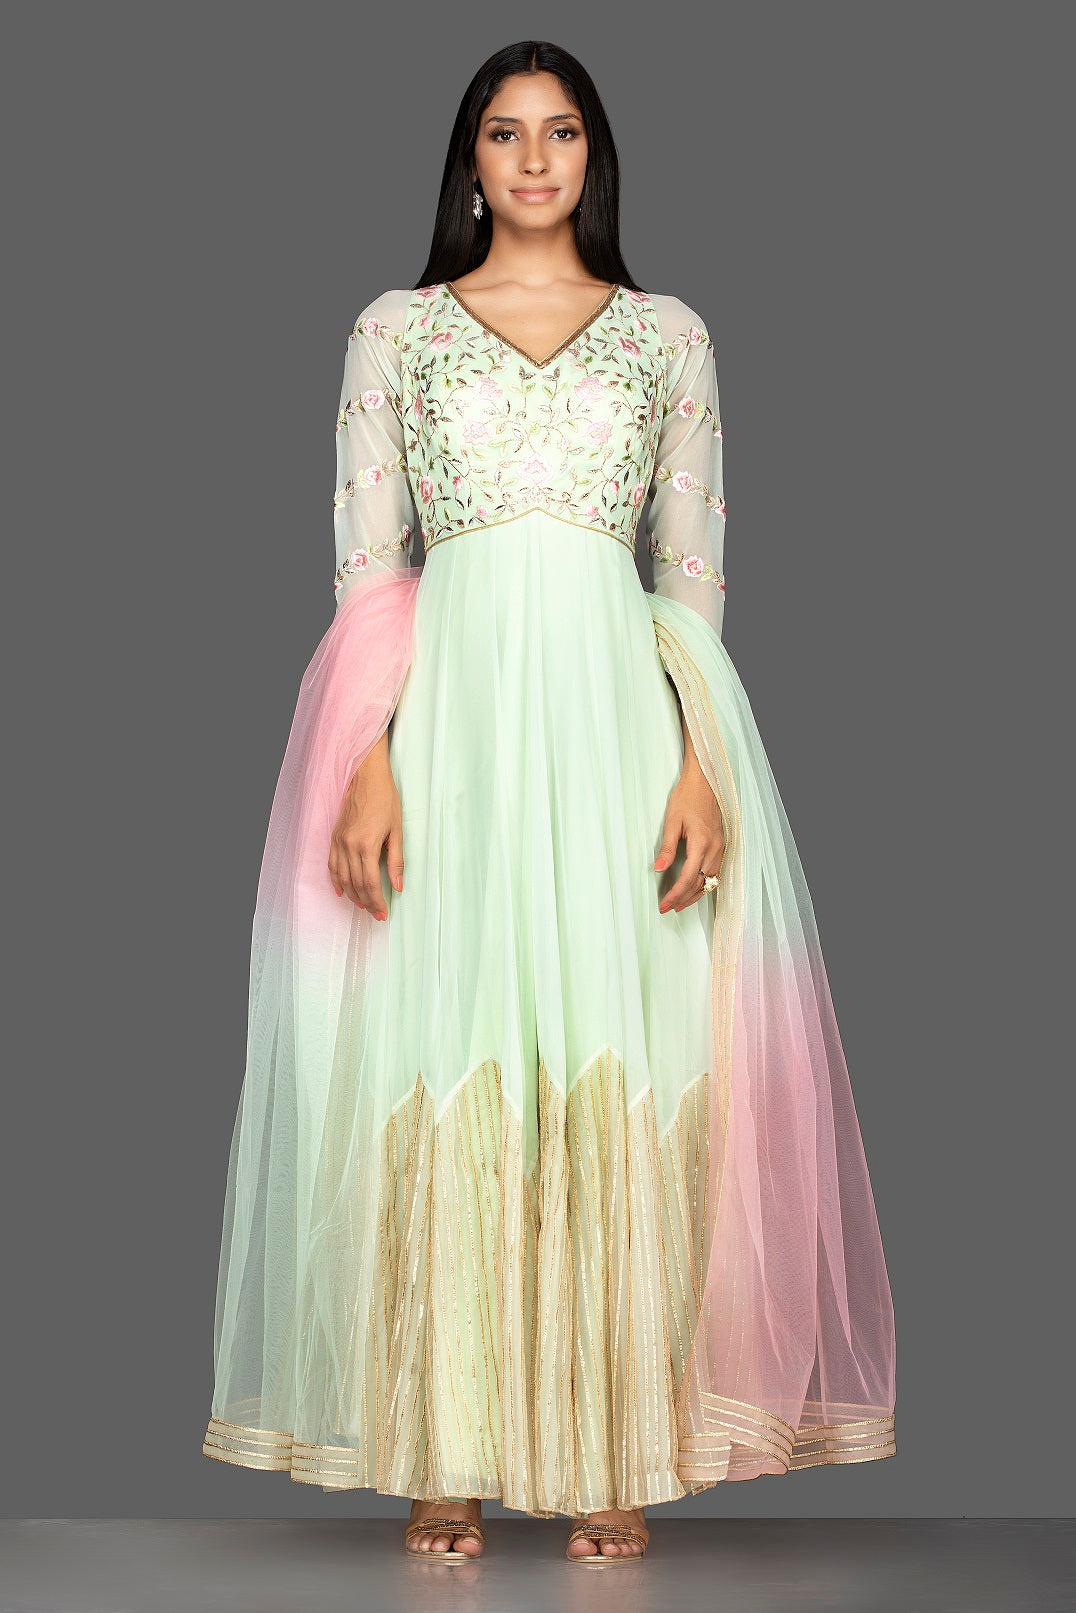 Buy mint green embroidered net floorlength Anarkali online in USA with dupatta. Spread ethnic elegance on weddings and special occasions in splendid designer lehengas, Anarkali suits crafted with exquisite Indian craftsmanship from Pure Elegance Indian fashion store in USA.-full view